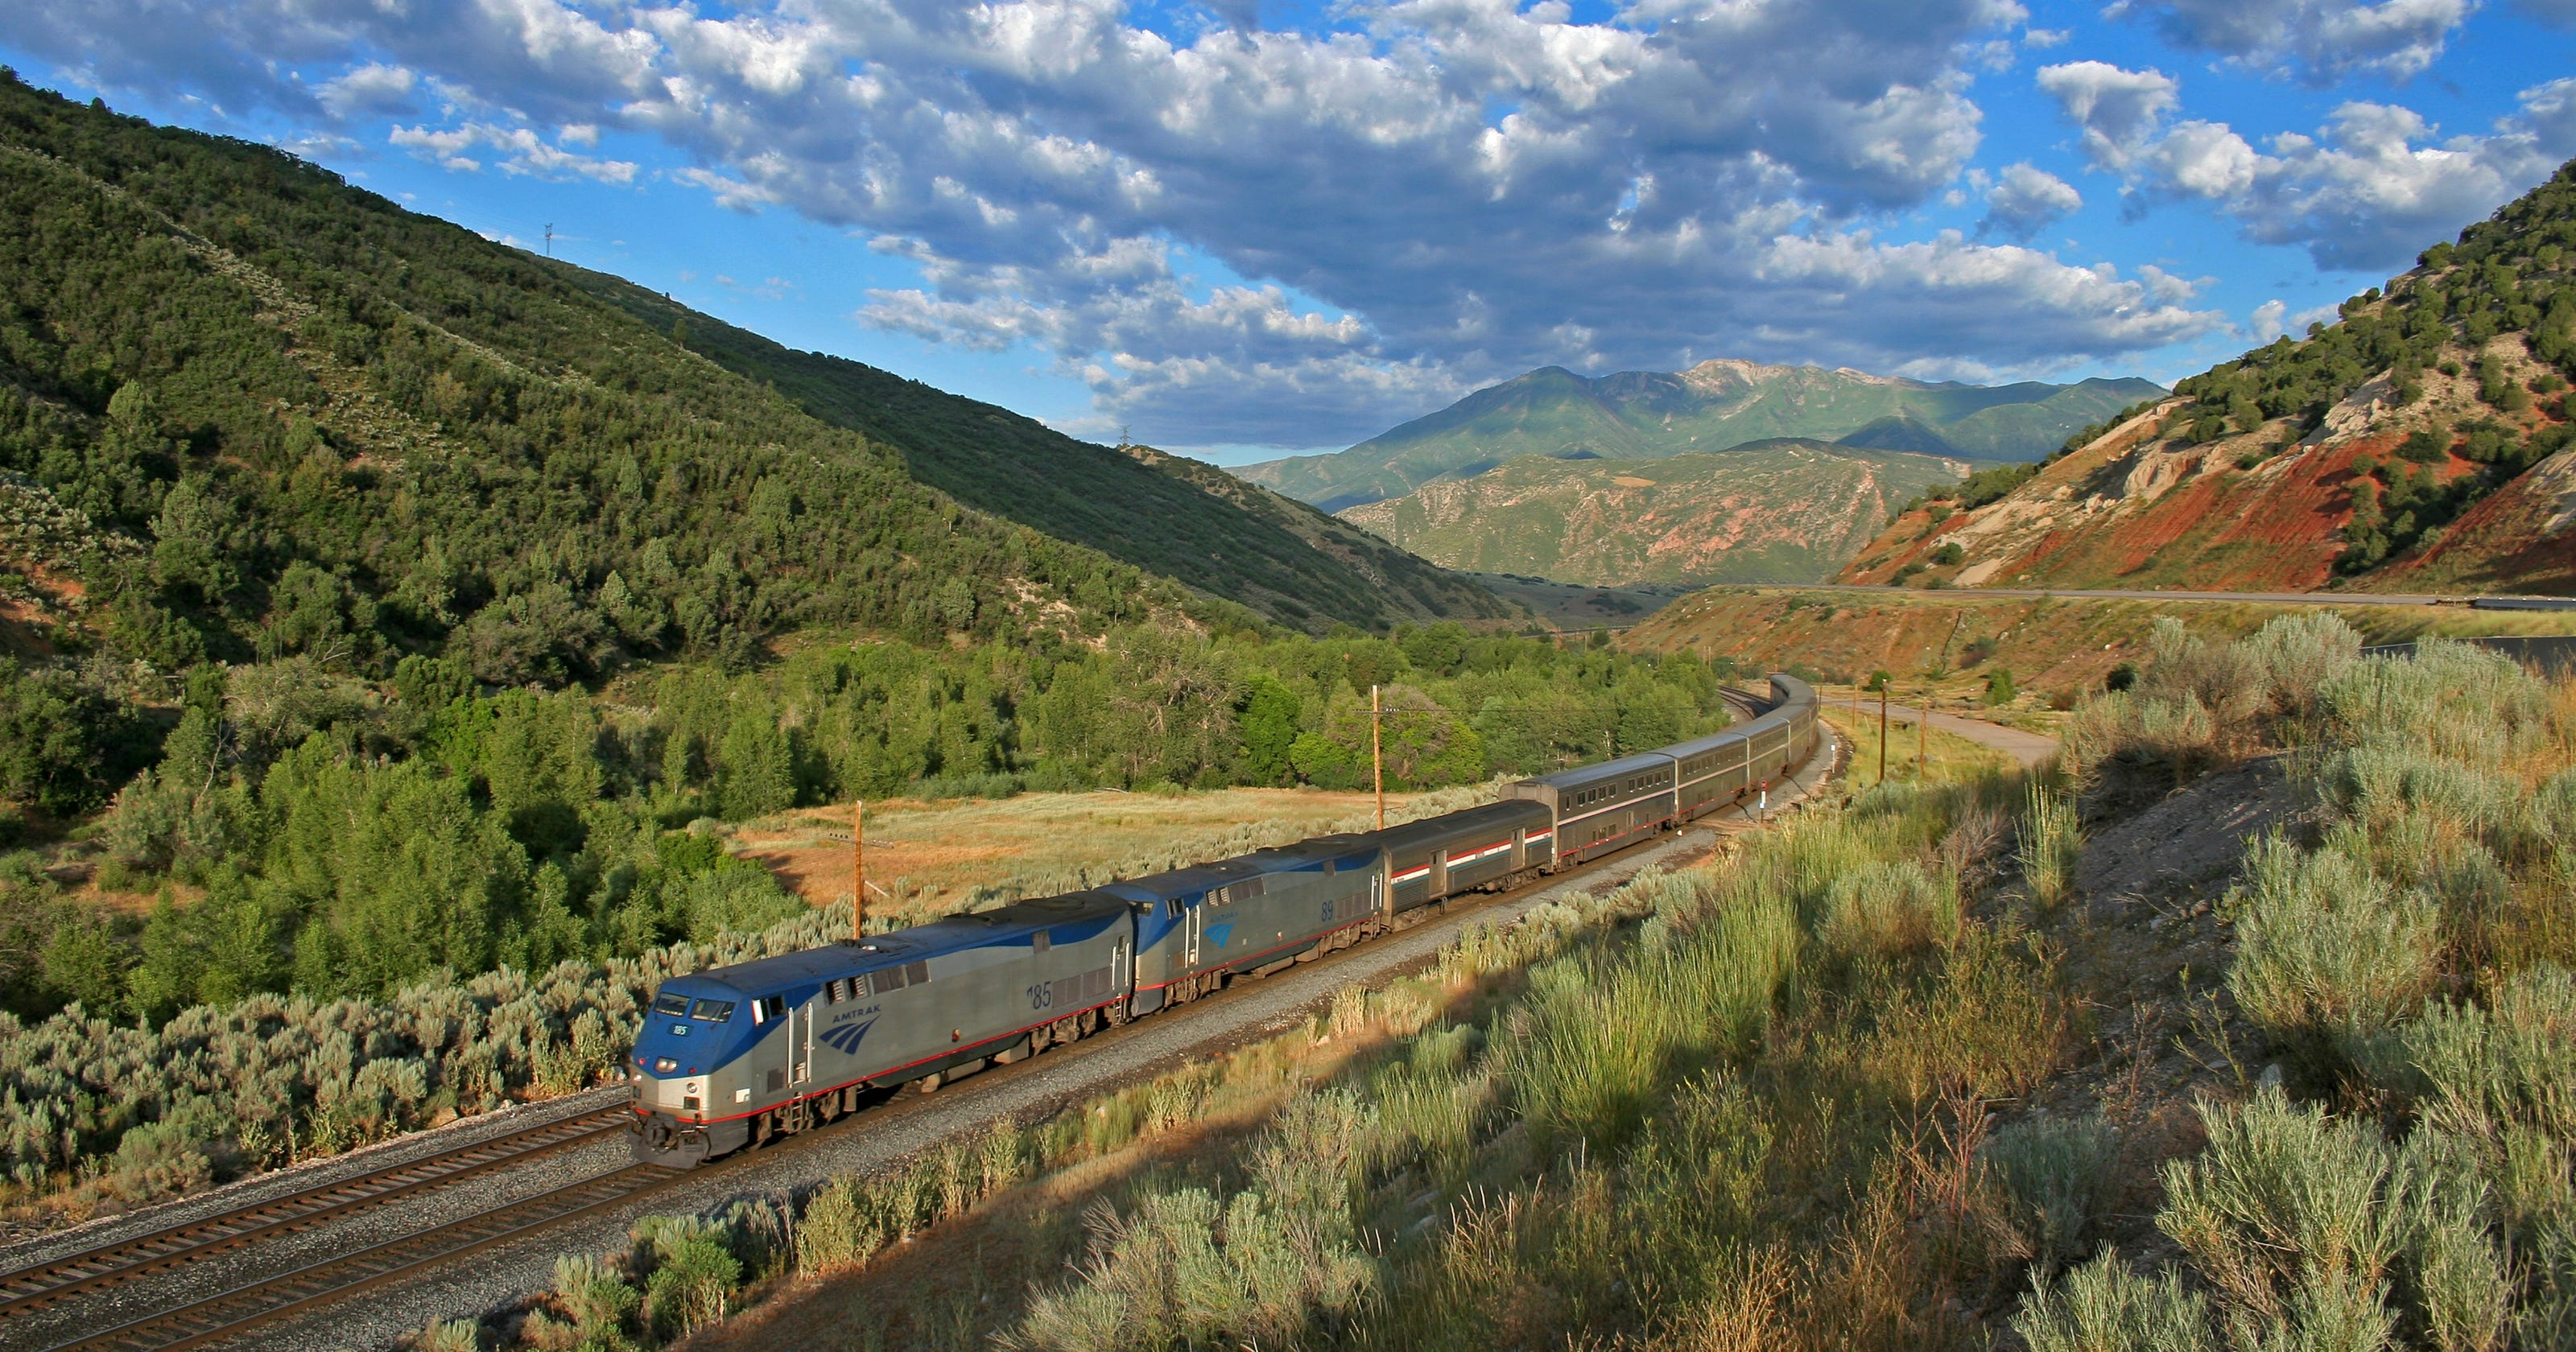 10 iconic train excursions